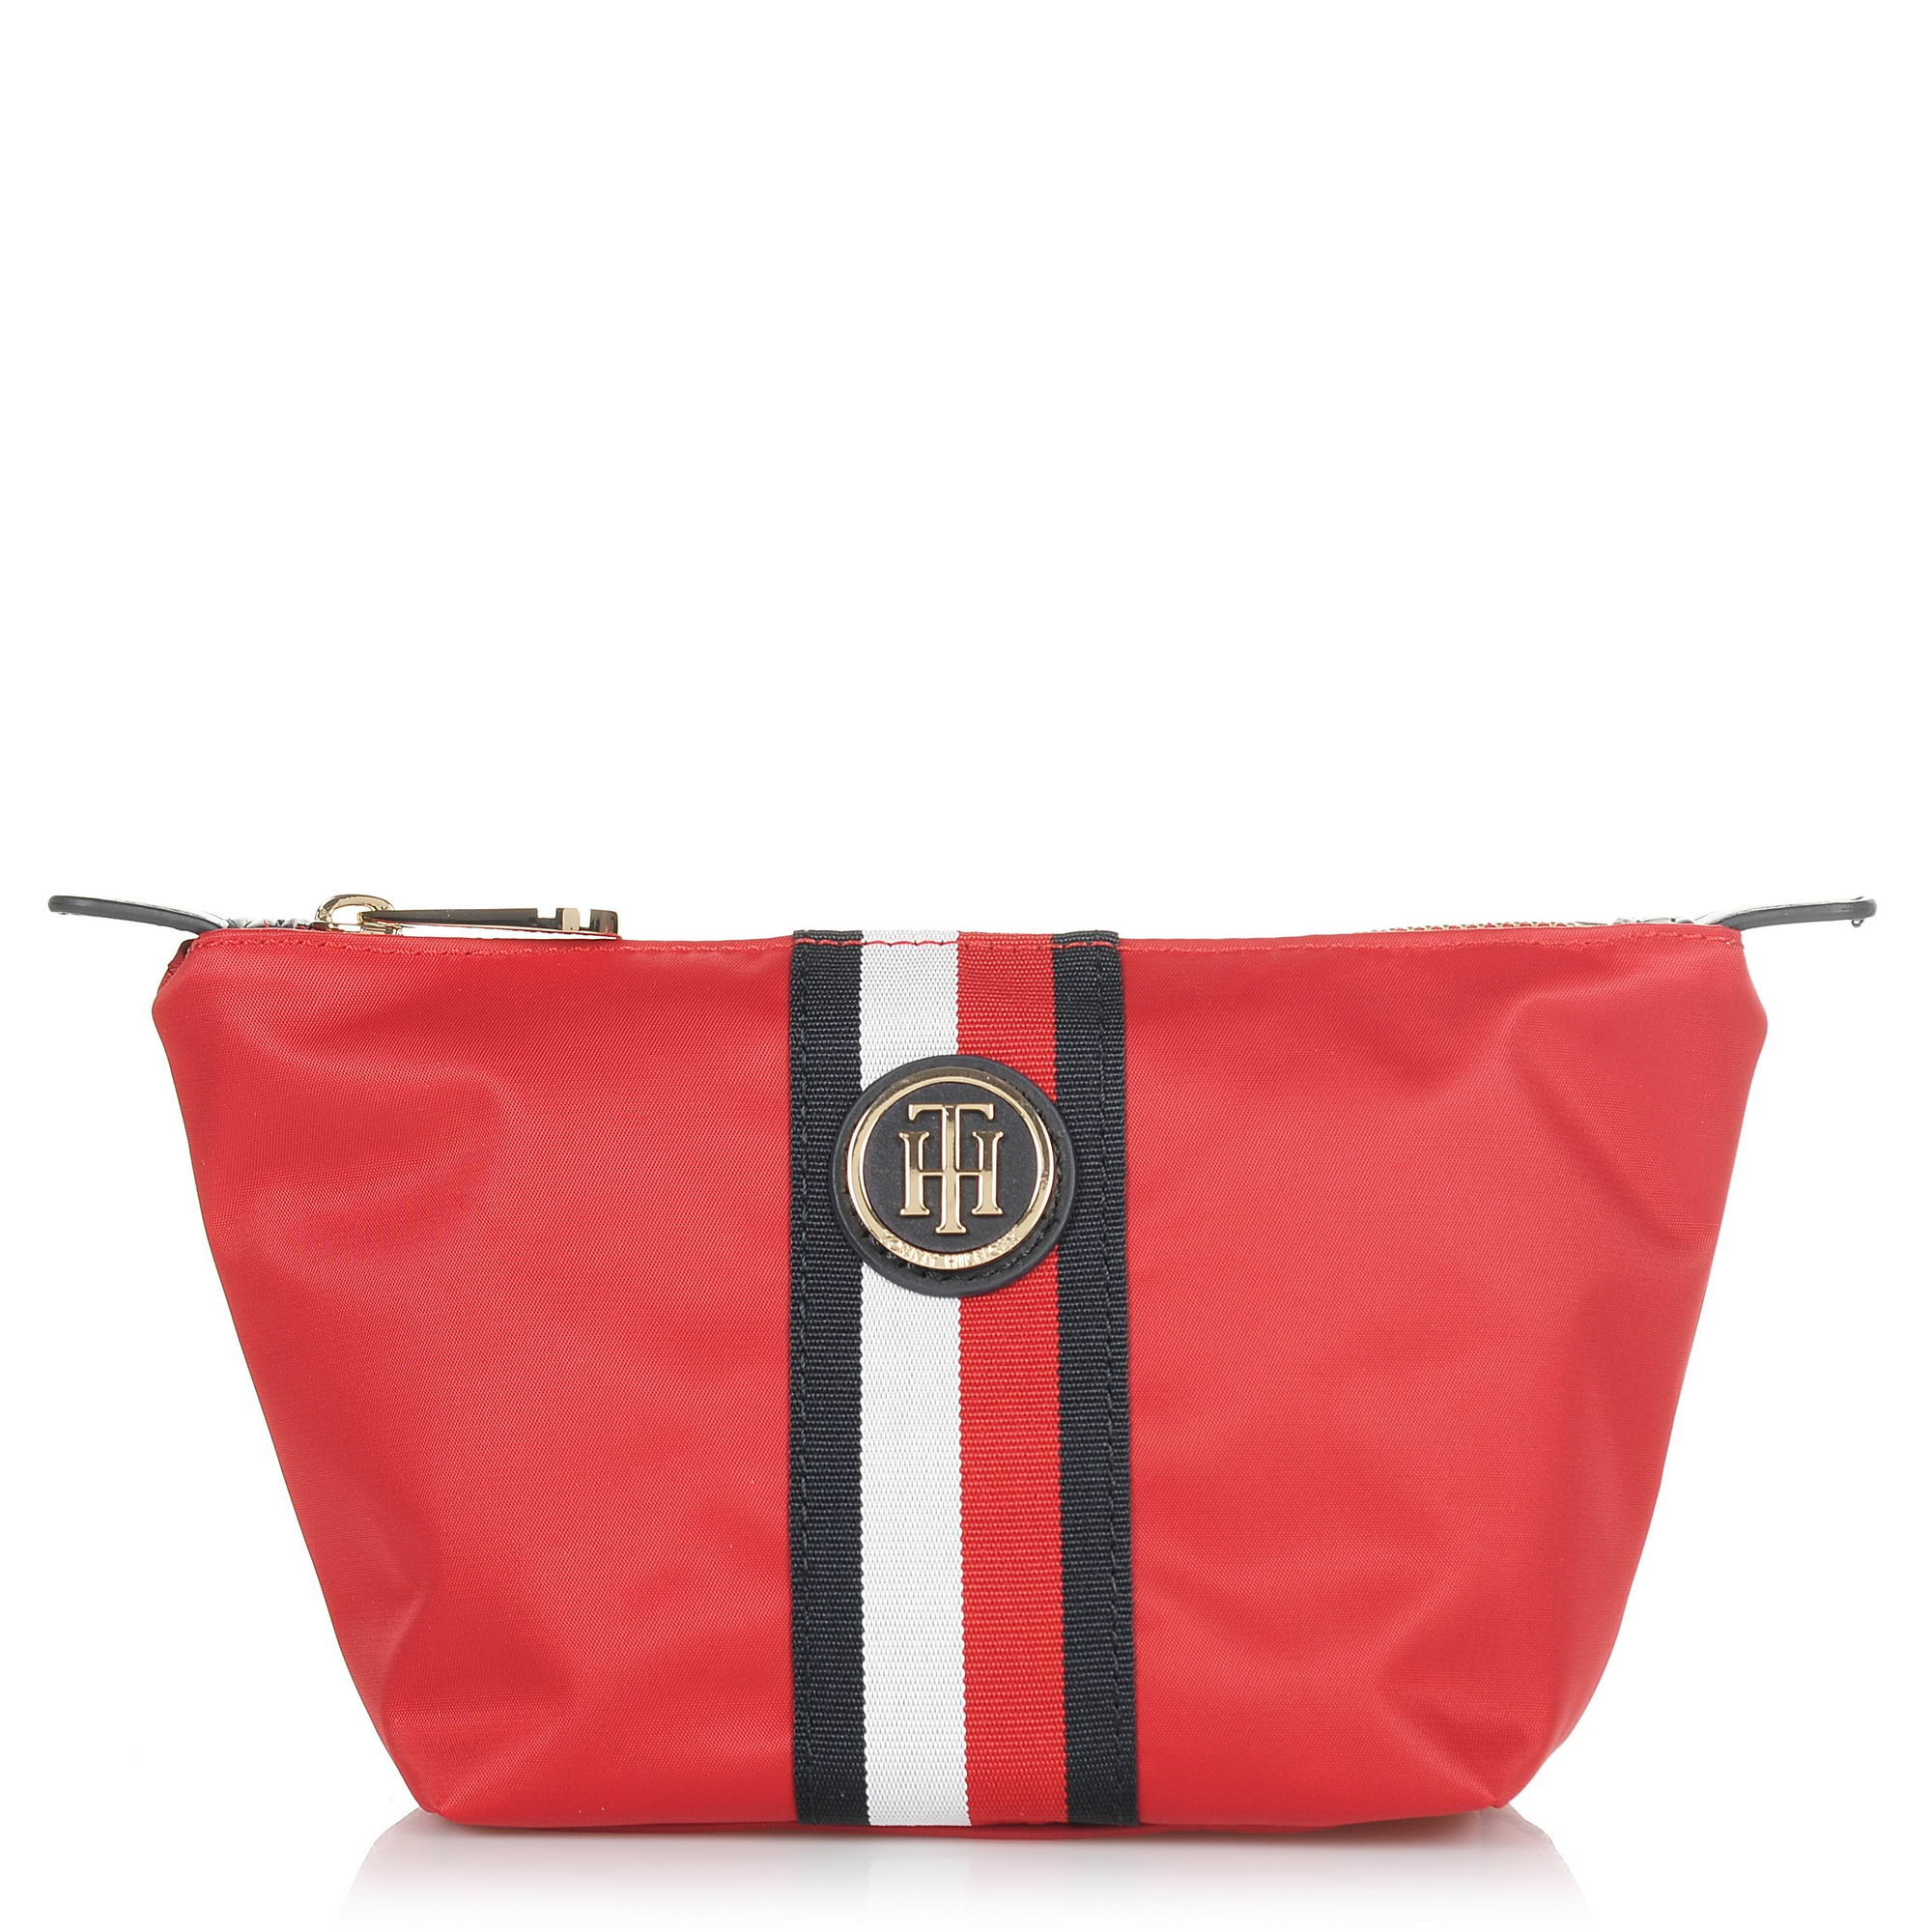 Νεσεσέρ Tommy Hilfiger Poppy Make Up Bag RP AW0AW05859